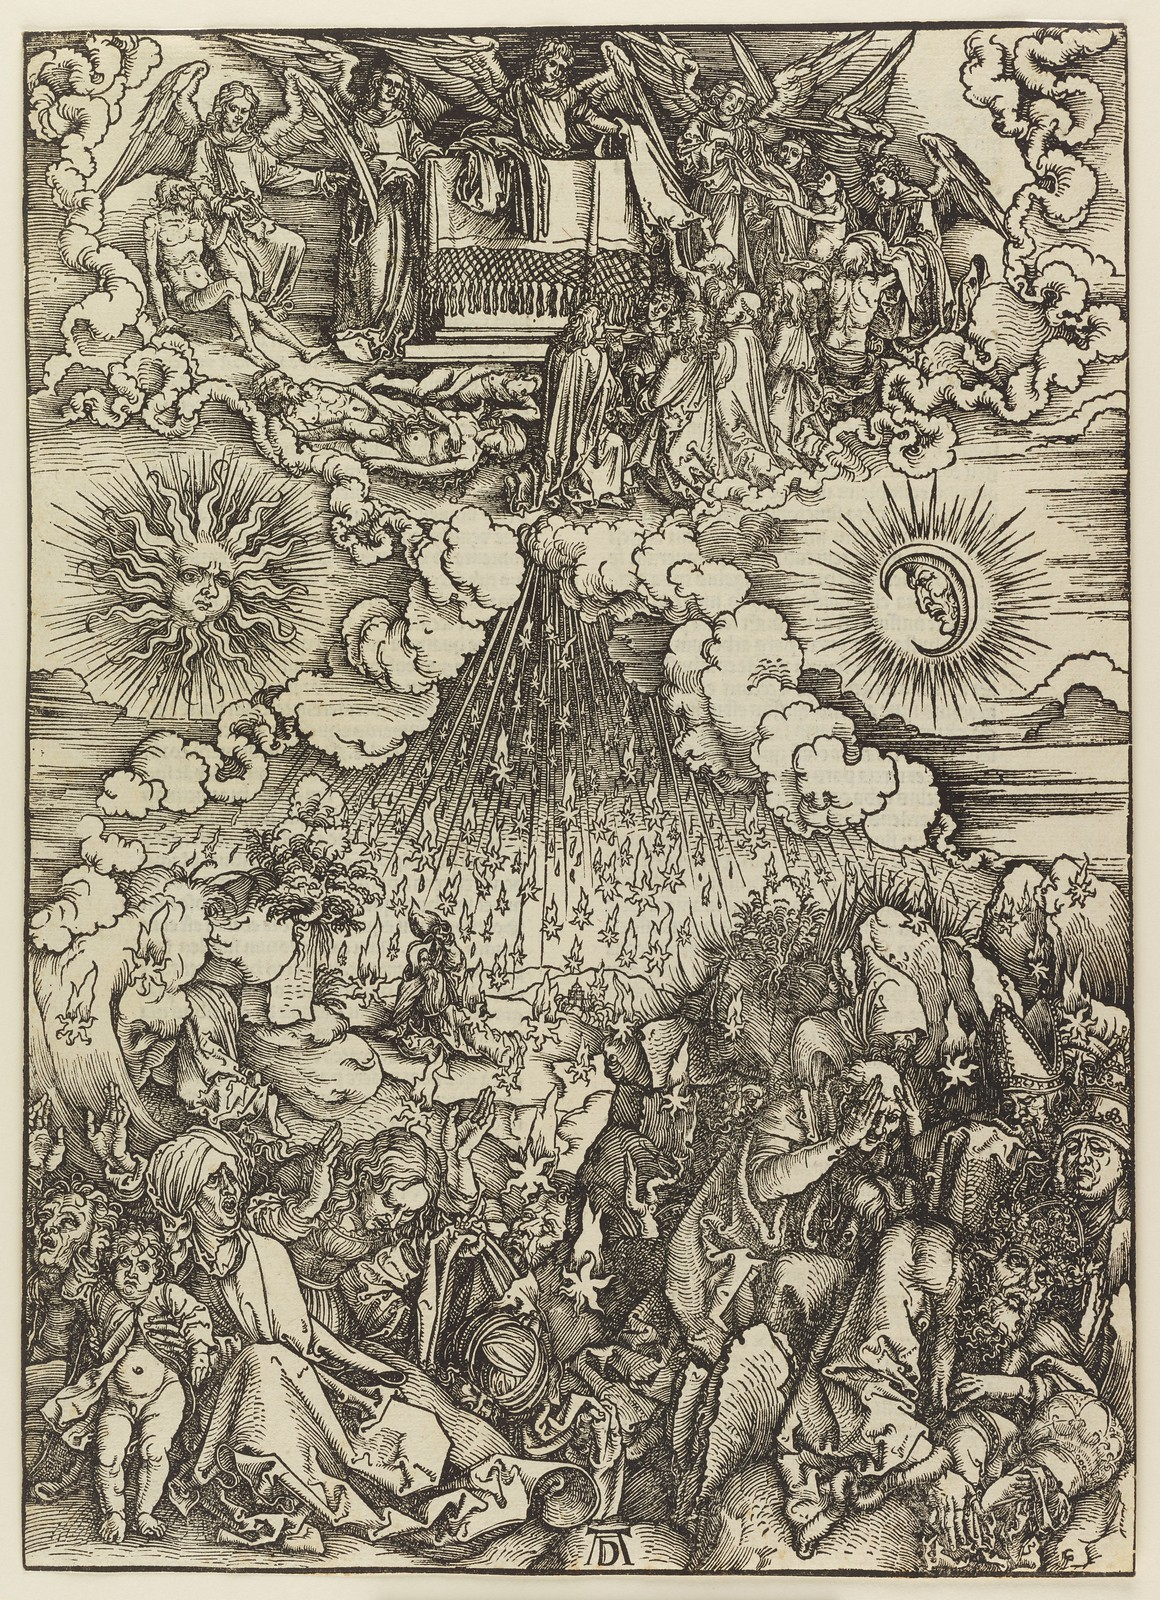 Albrecht Dürer - Opening of the fifth and sixth seals, Plate five of fifteen from the Latin edition of The Apocalypse series, printed 1511